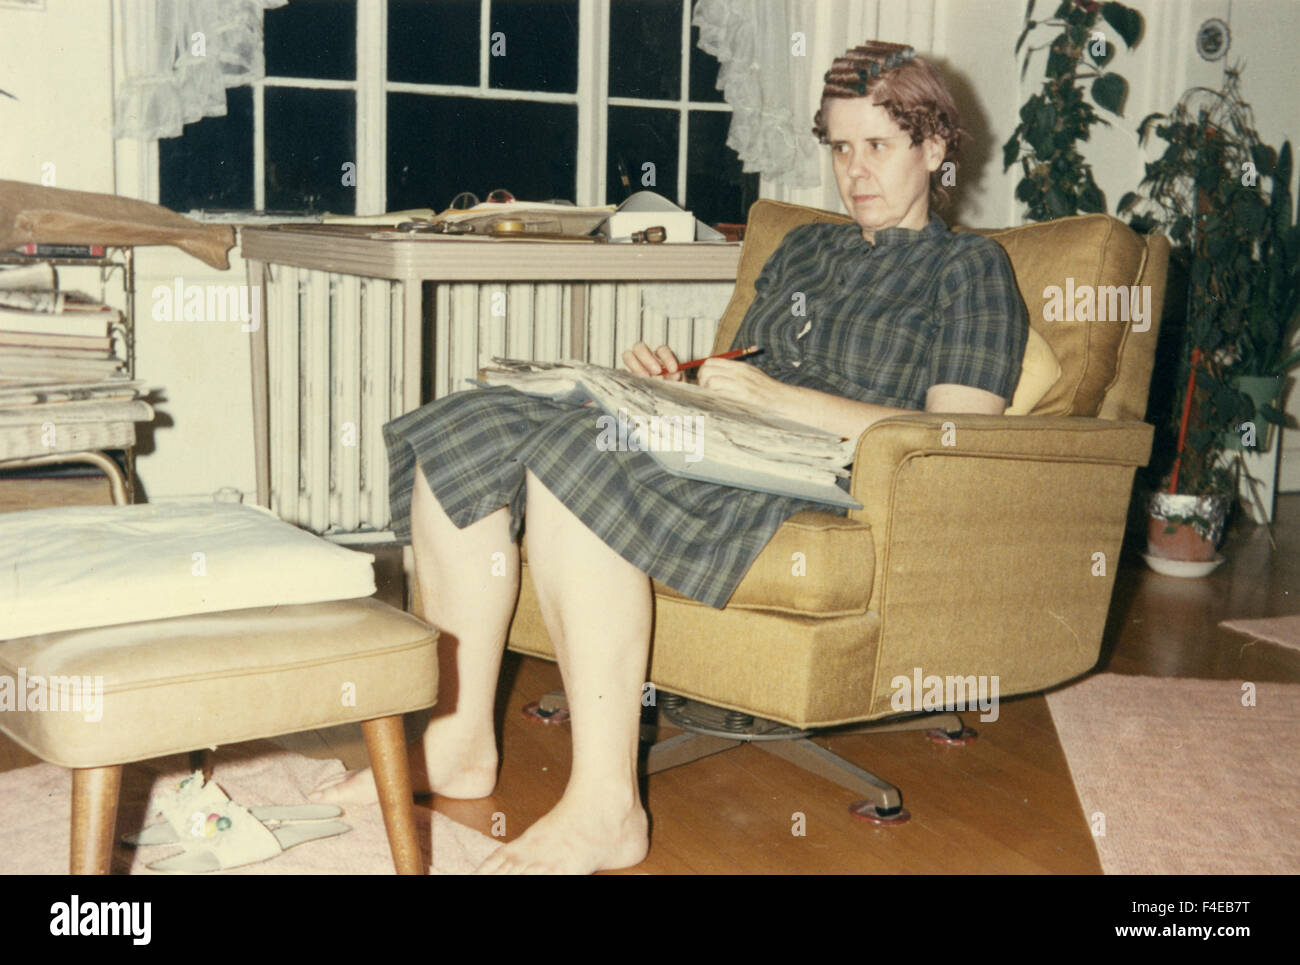 1960s woman fashion sitting in chair in living room - Stock Image